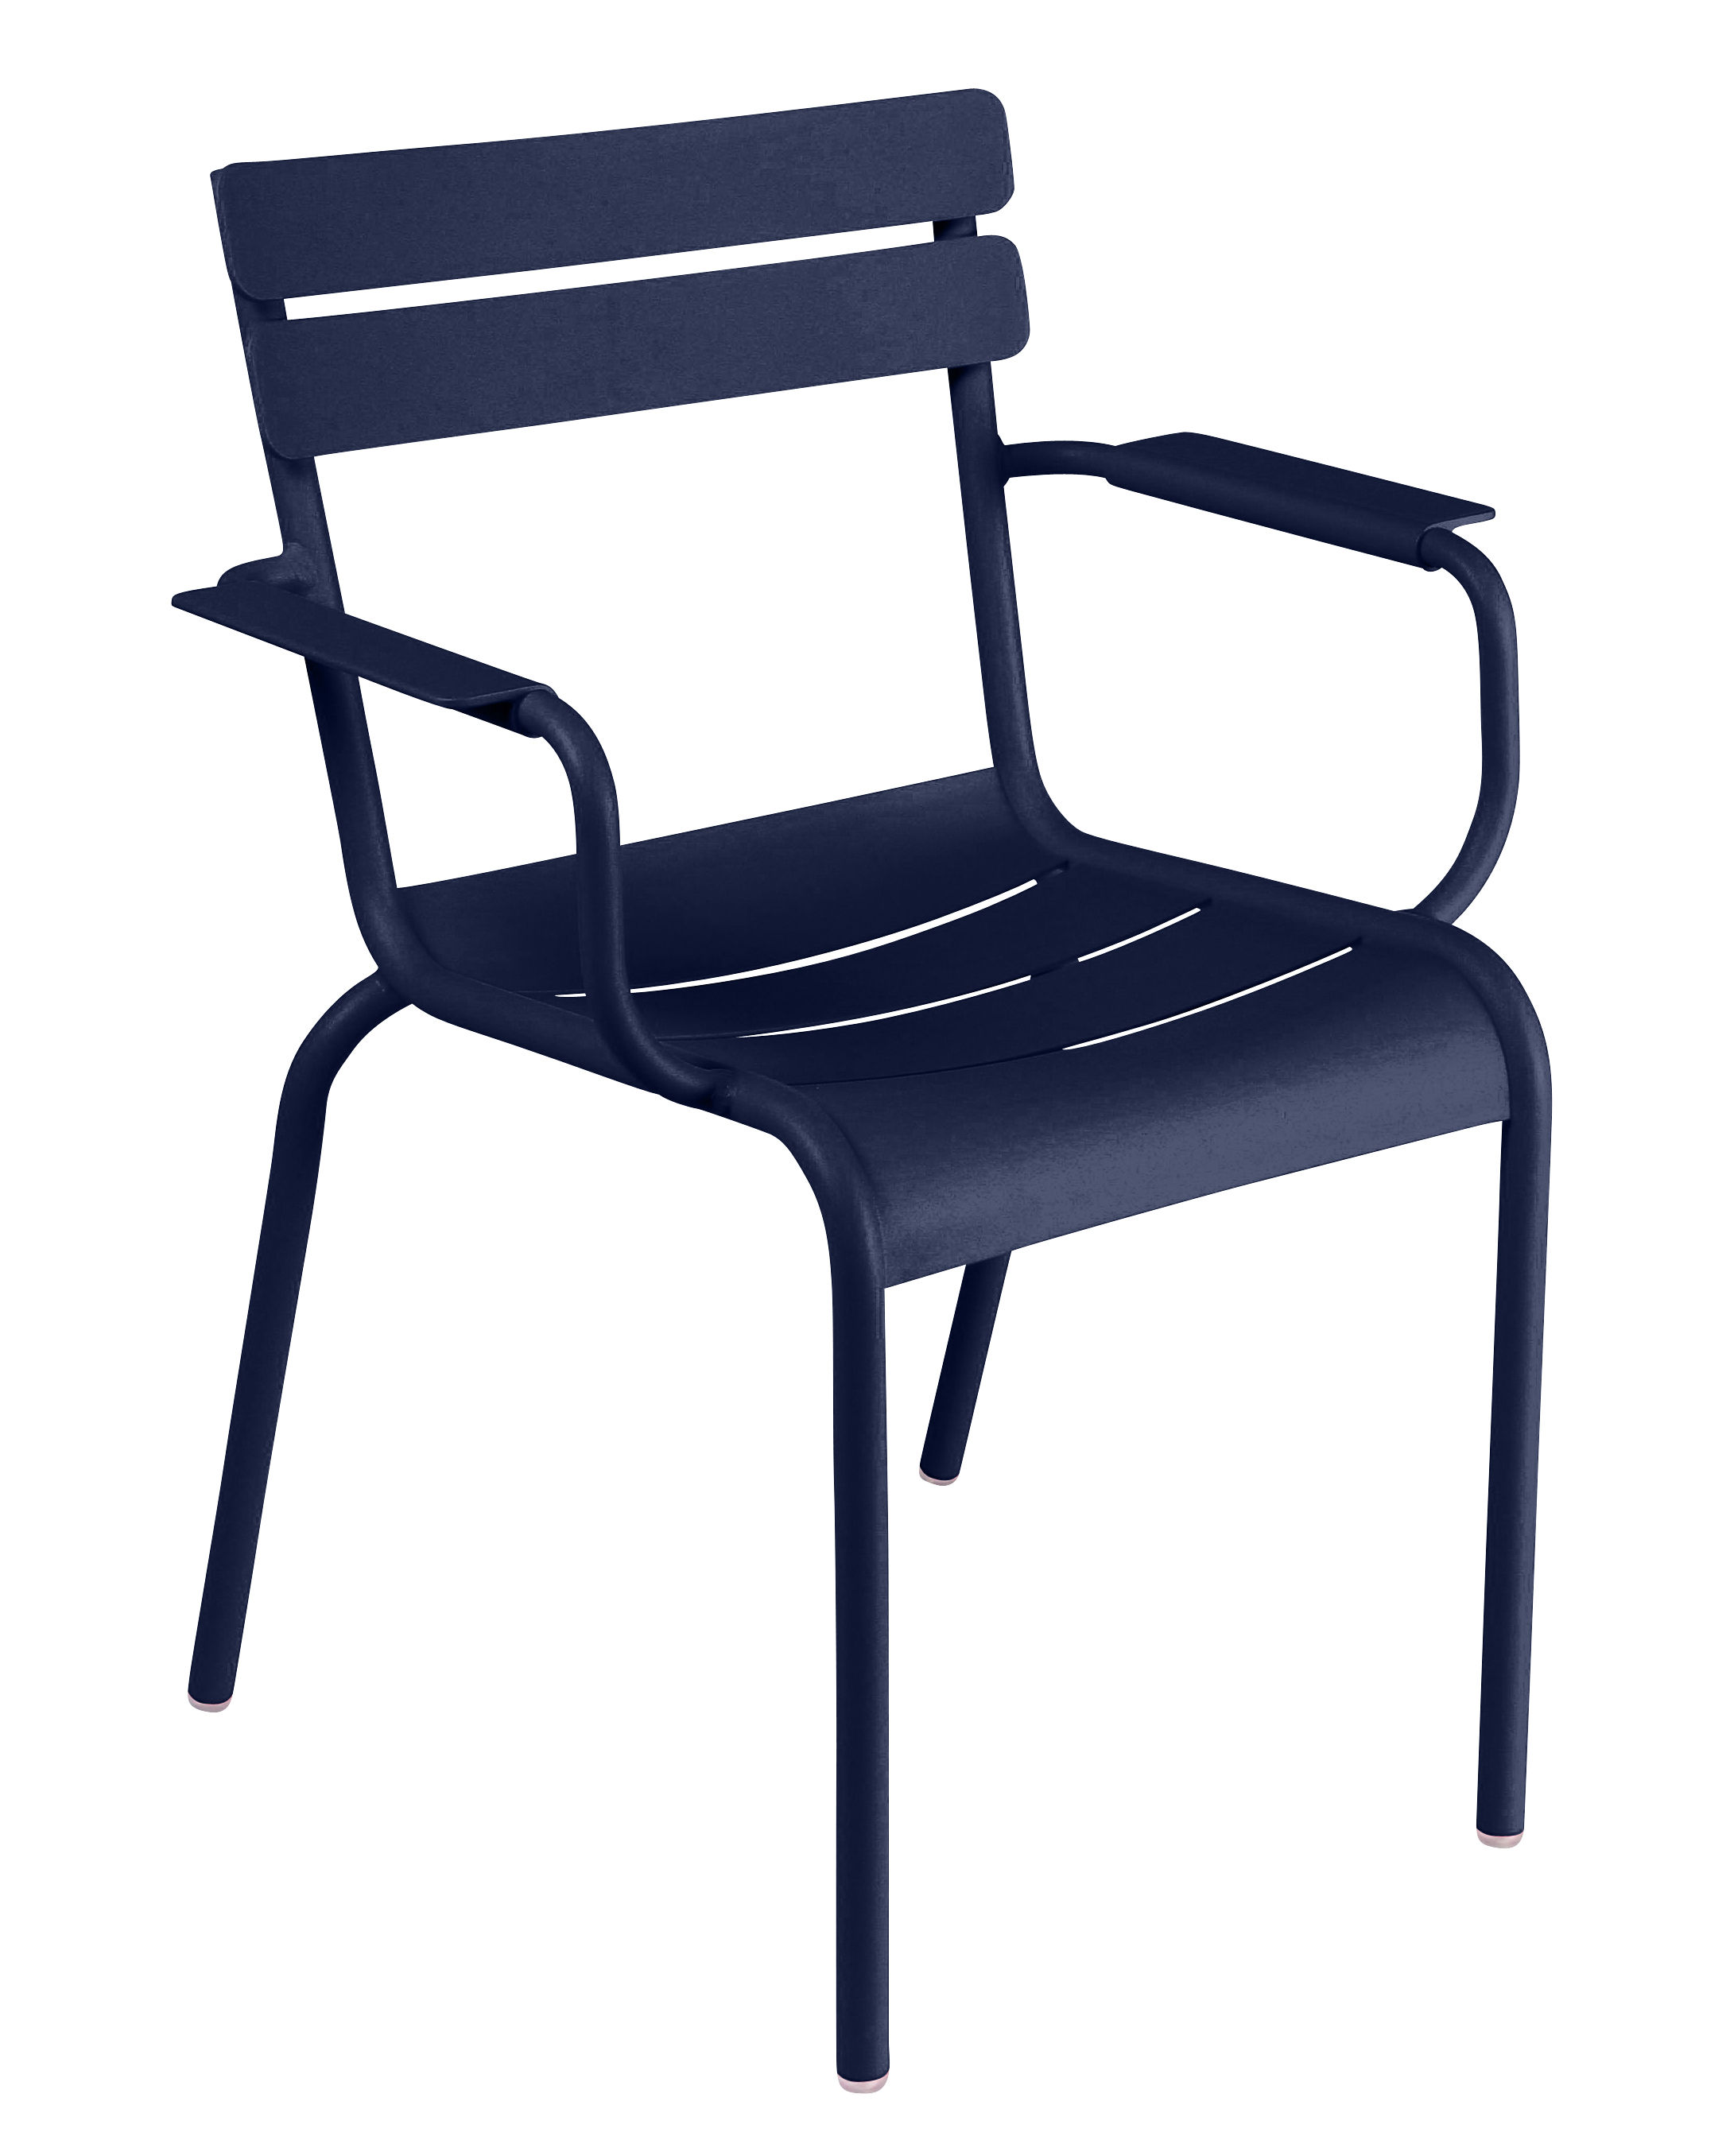 Furniture - Chairs - Luxembourg Stackable armchair - / Aluminium by Fermob - Ocean Blue - Lacquered aluminium